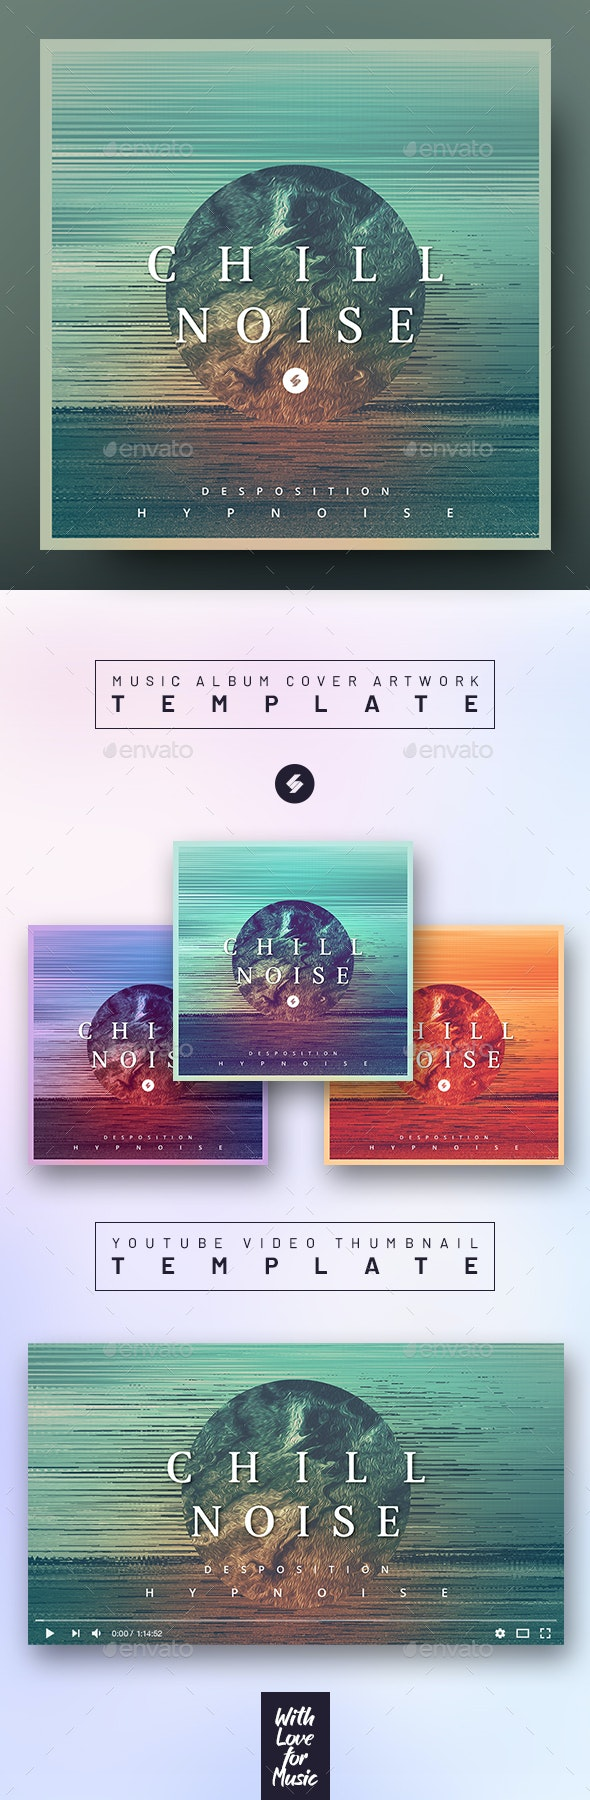 Chill Noise – Music Album Cover Artwork / Youtube Video Thumbnail Template - Miscellaneous Social Media